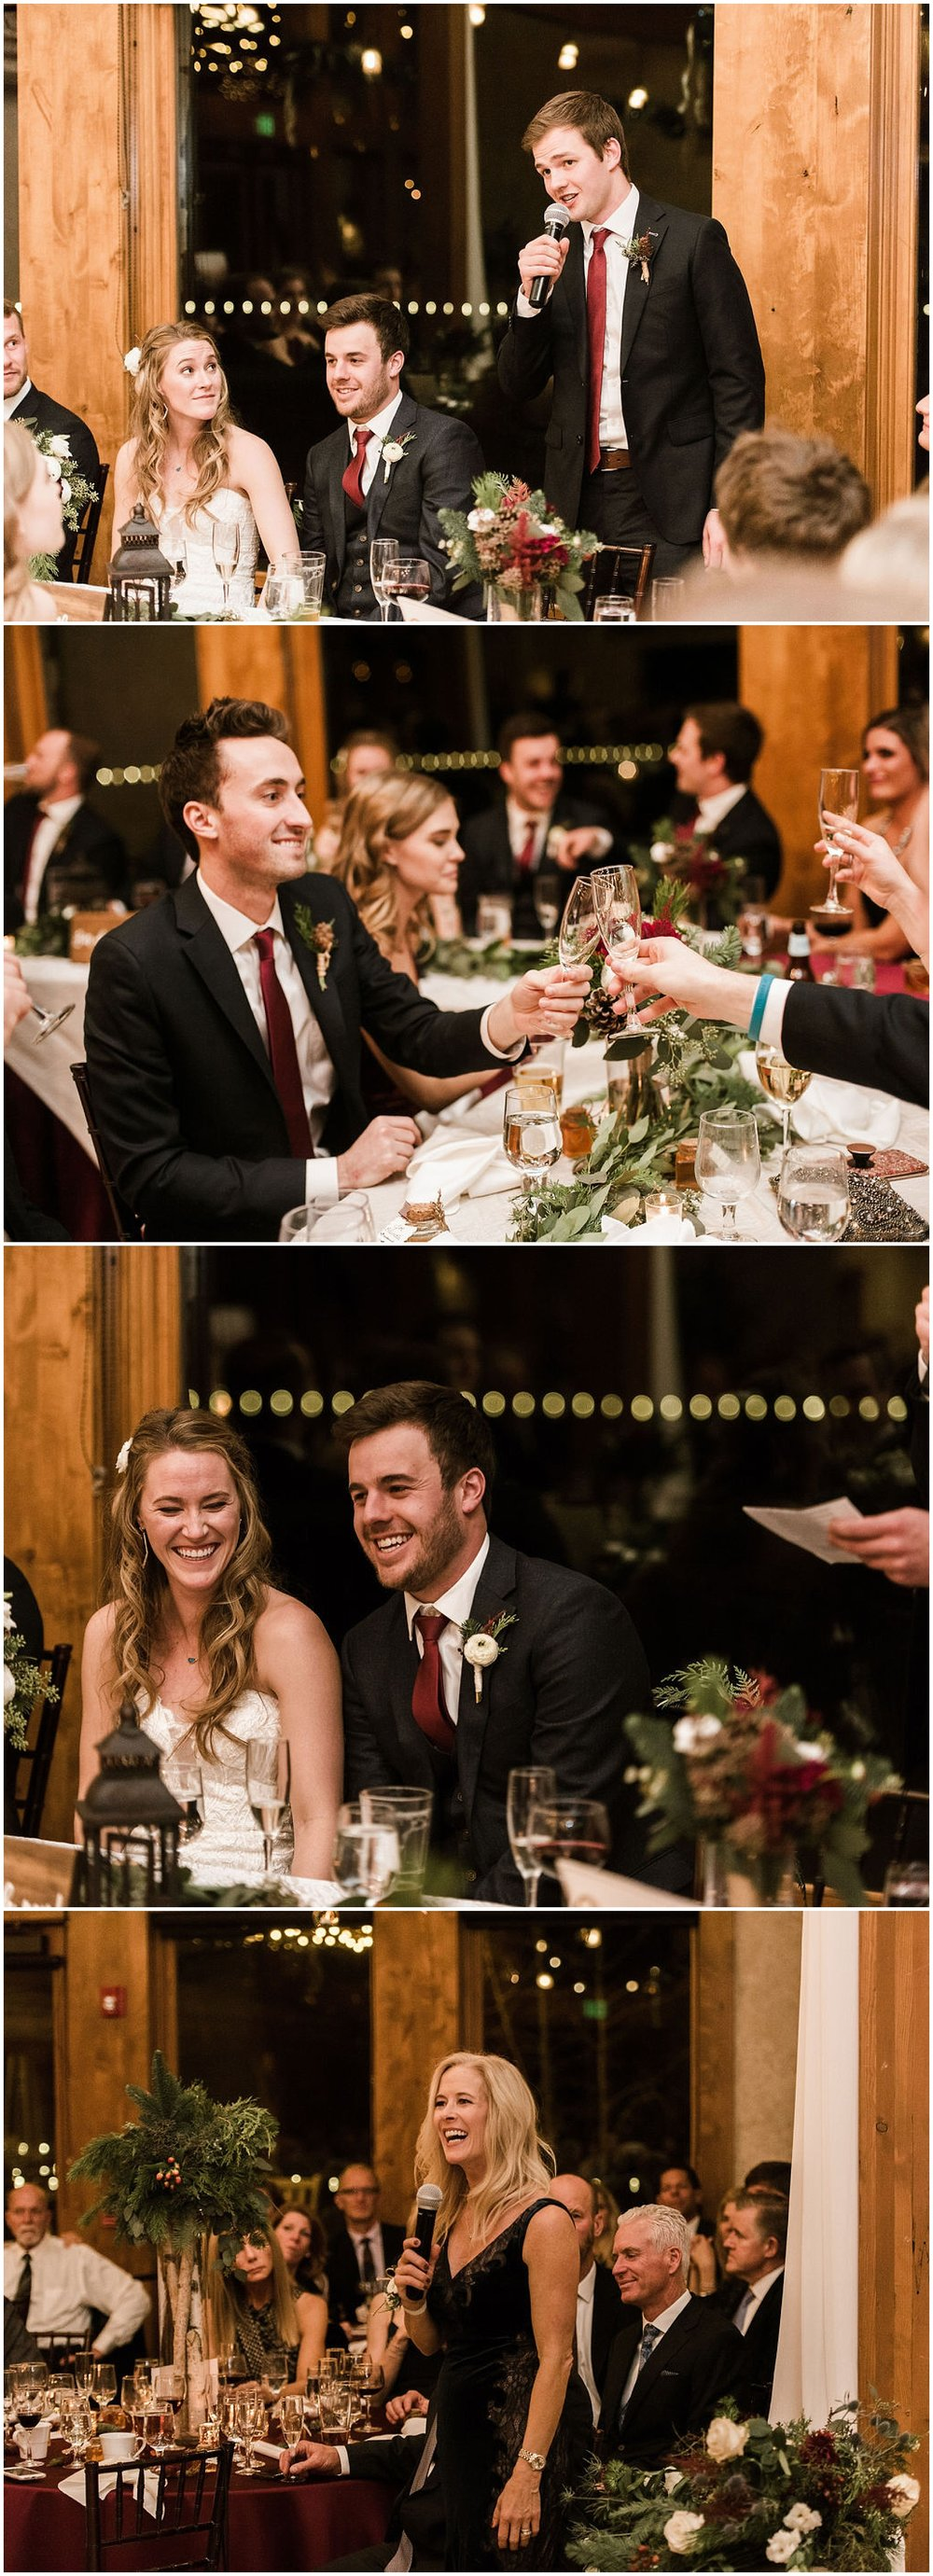 Katesalleyphotography-632_Haley and Dan get married in Estes Park.jpg